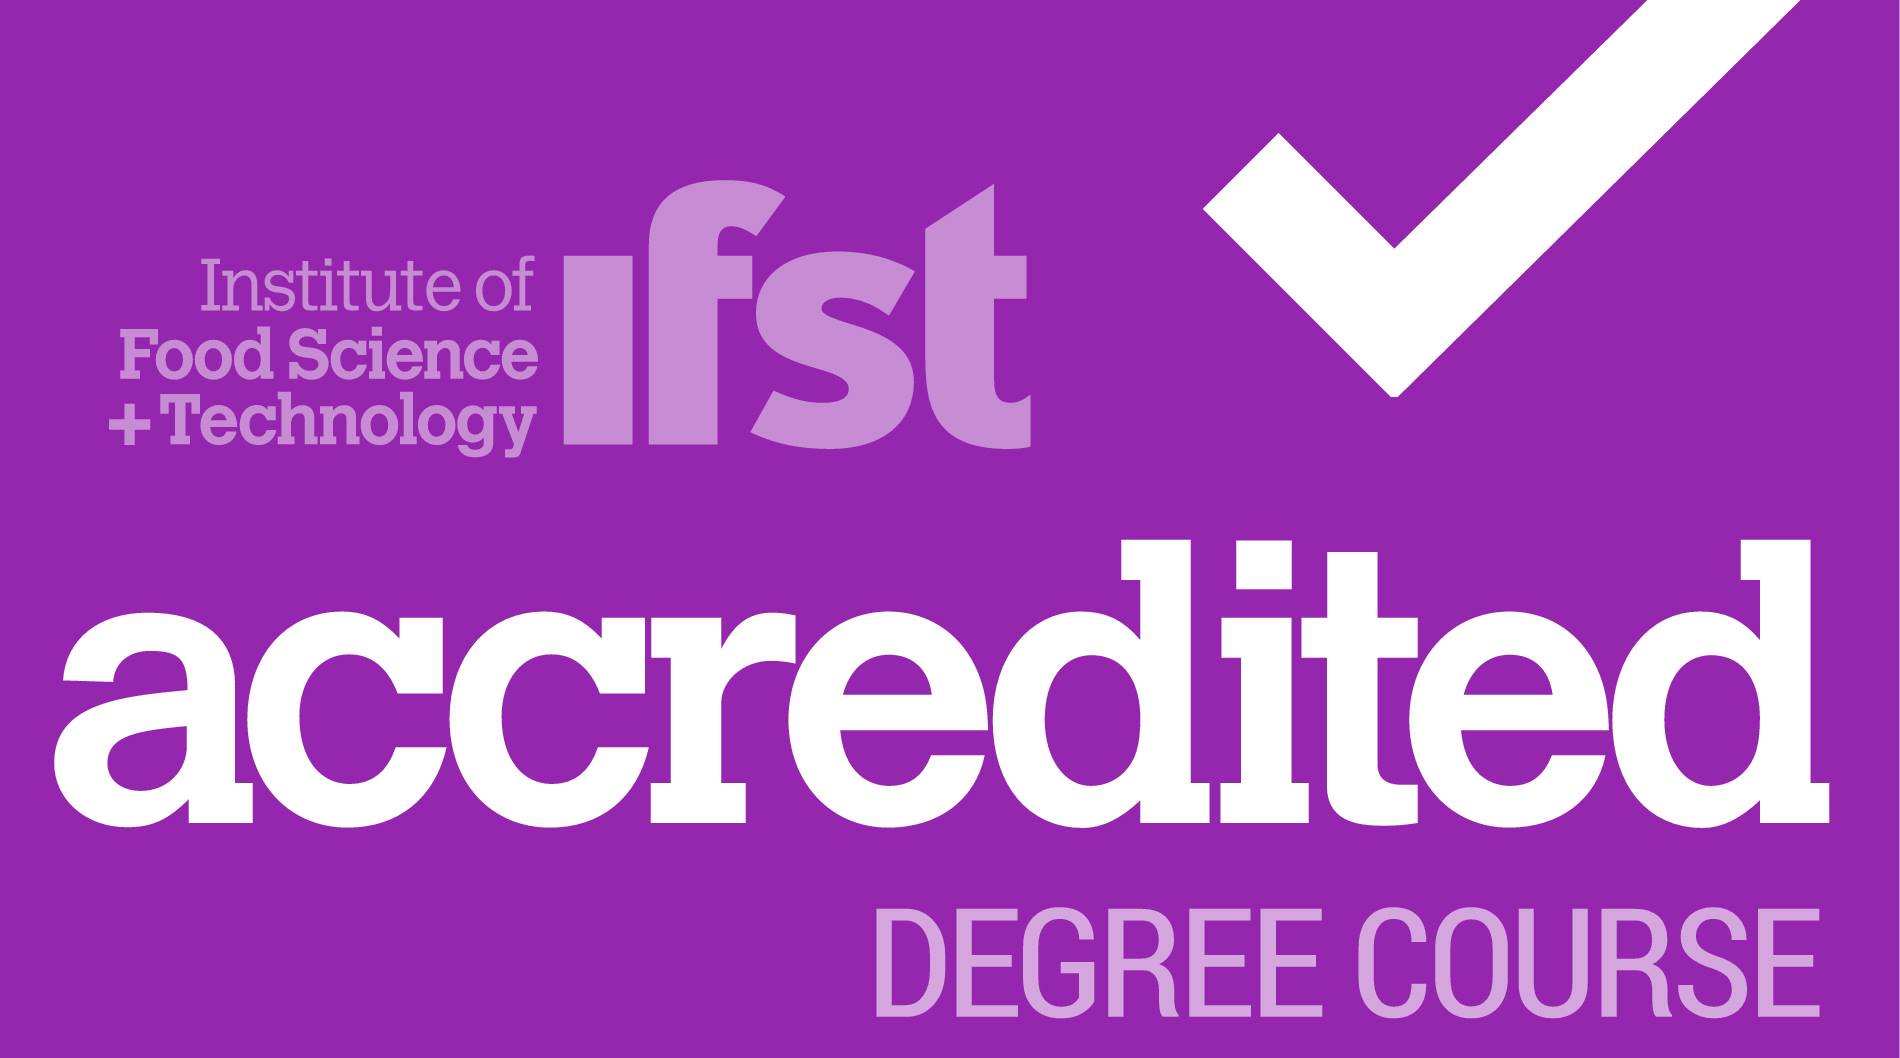 BSc Food Science, UCC, is IFST accredited